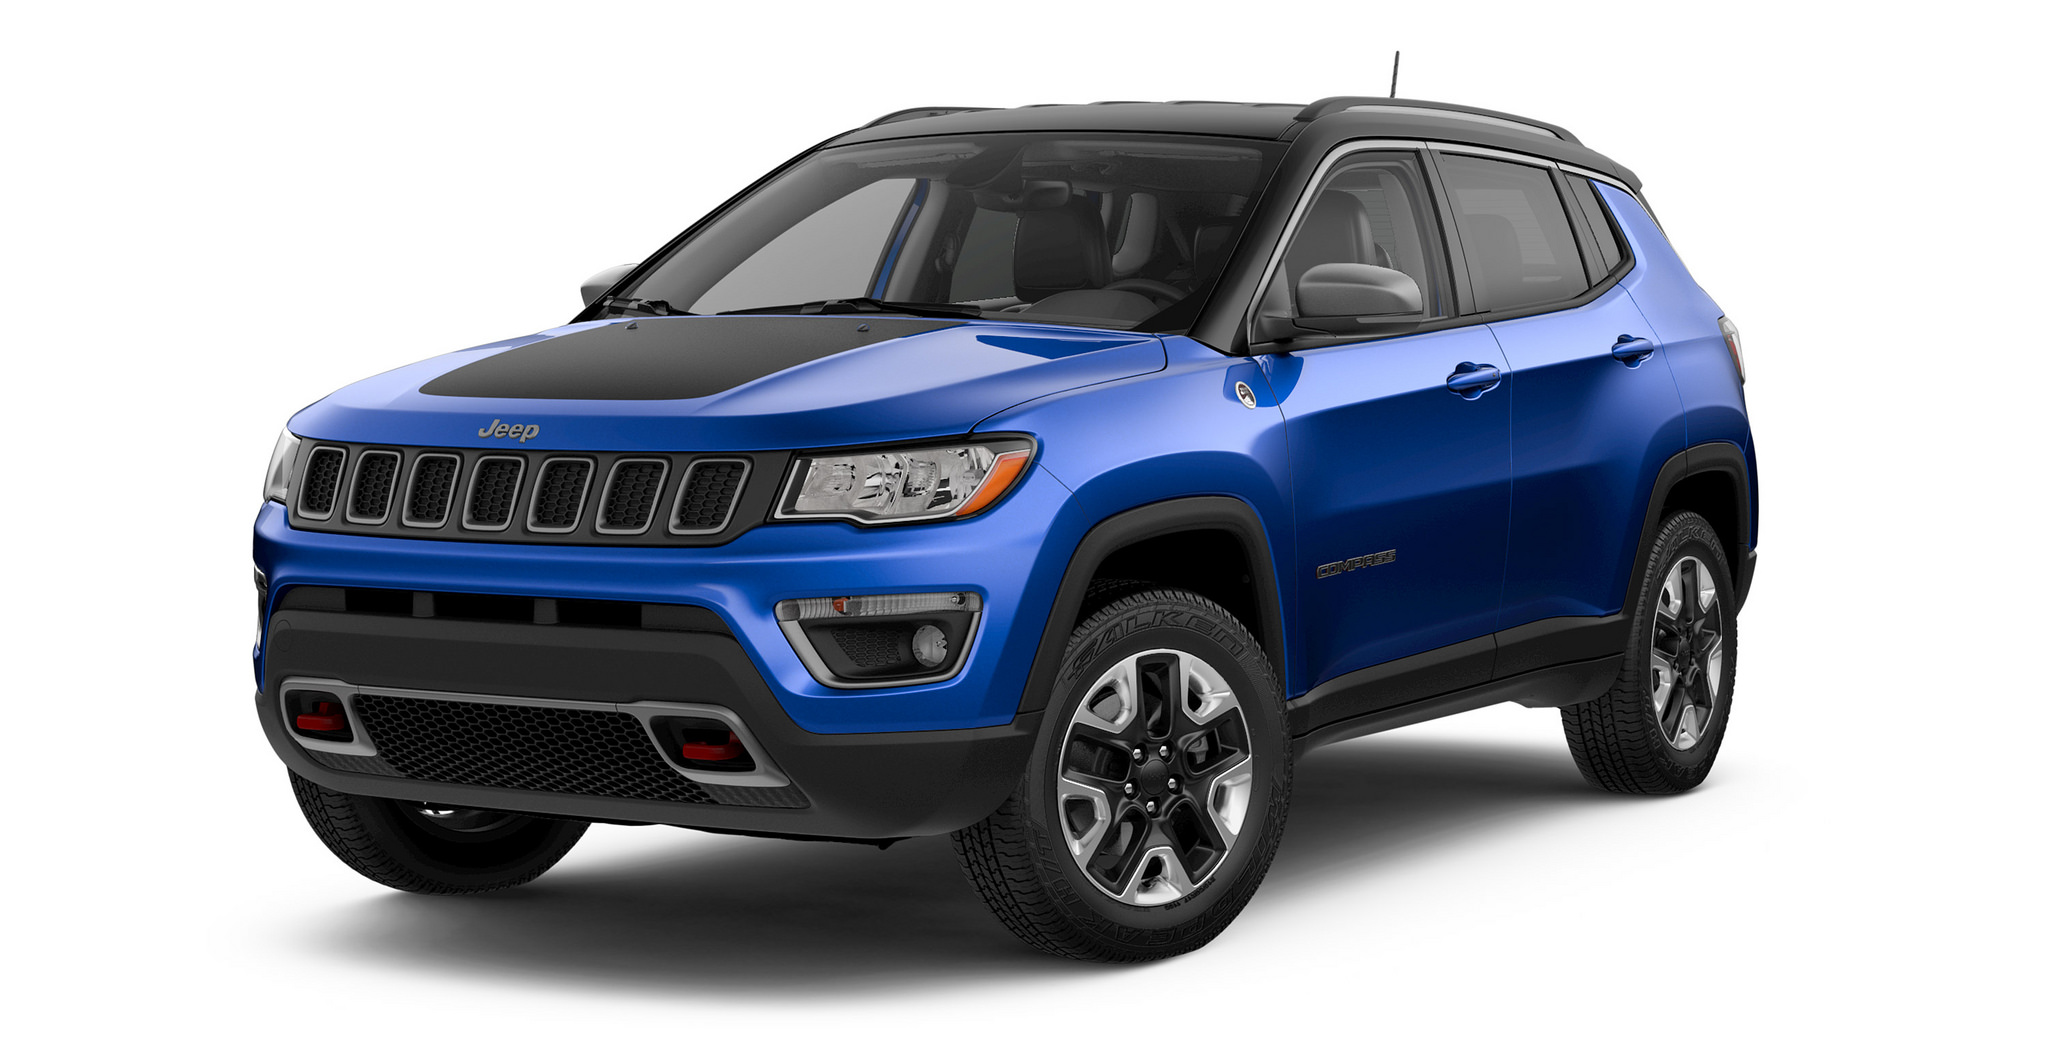 New Jeep 2018 >> 2018 Jeep Compass Overview - The News Wheel